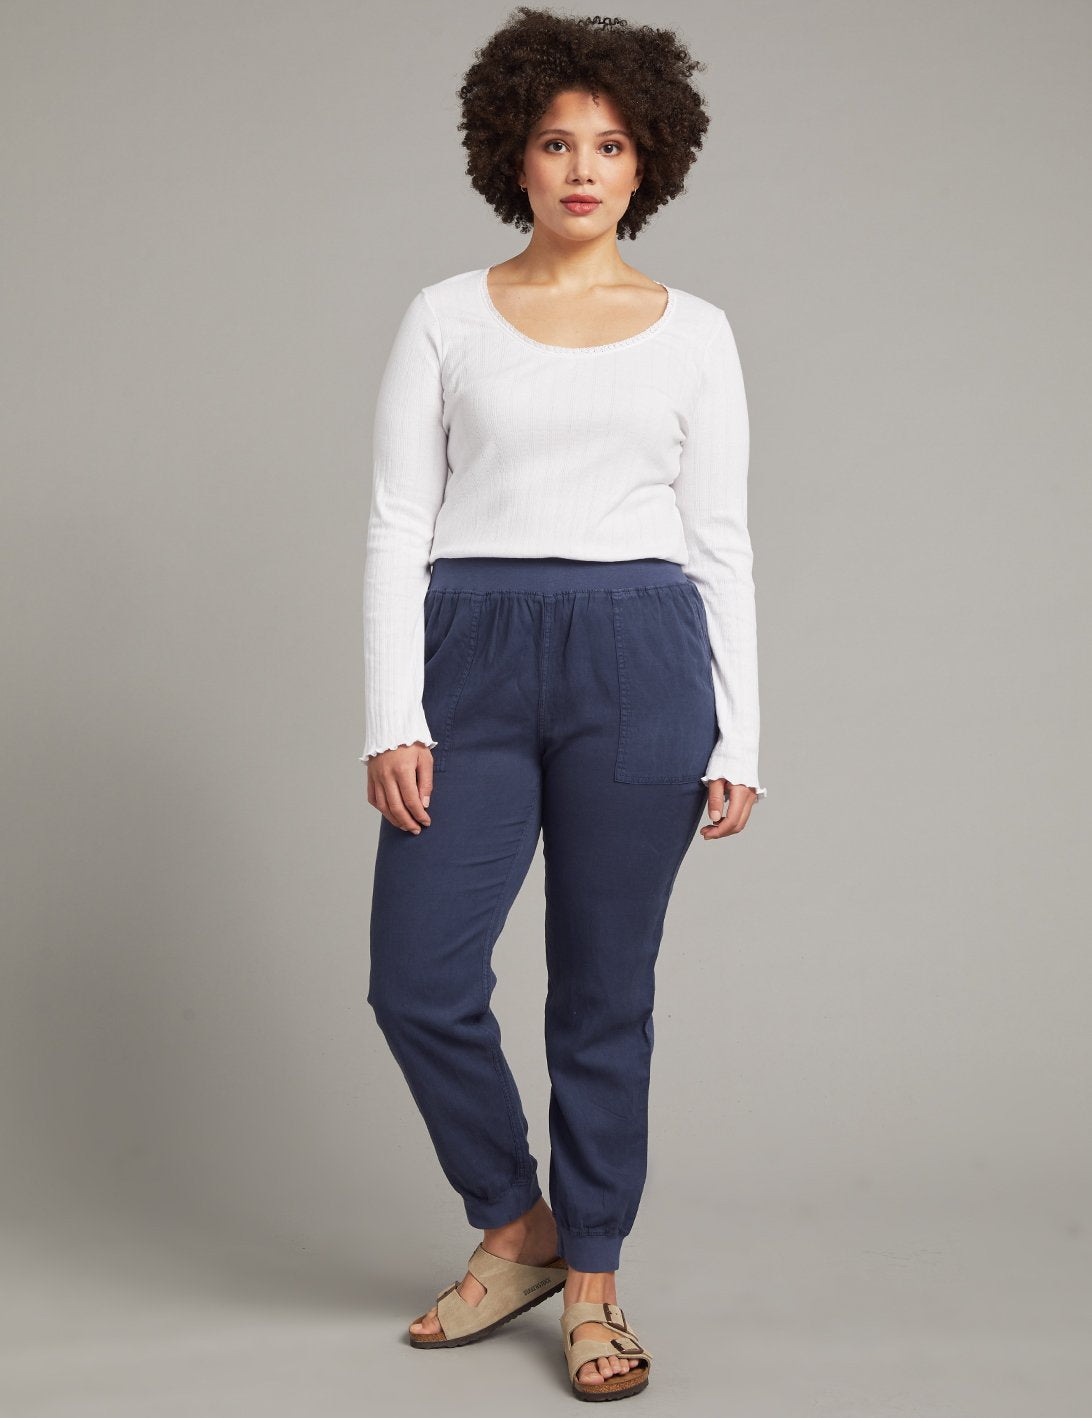 A tried-and-true Faherty favorite. These elevated joggers feature all the classic details — a slim, relaxed fit, comfortable pull-on waistband and knit cuffs, and casual drape. But the real star is the fabric: crafted from a soft, just-stretchy-enough blend of linen, cotton, and other fibers and then specially dyed and washed for a vintage-inspired, lived-in look.